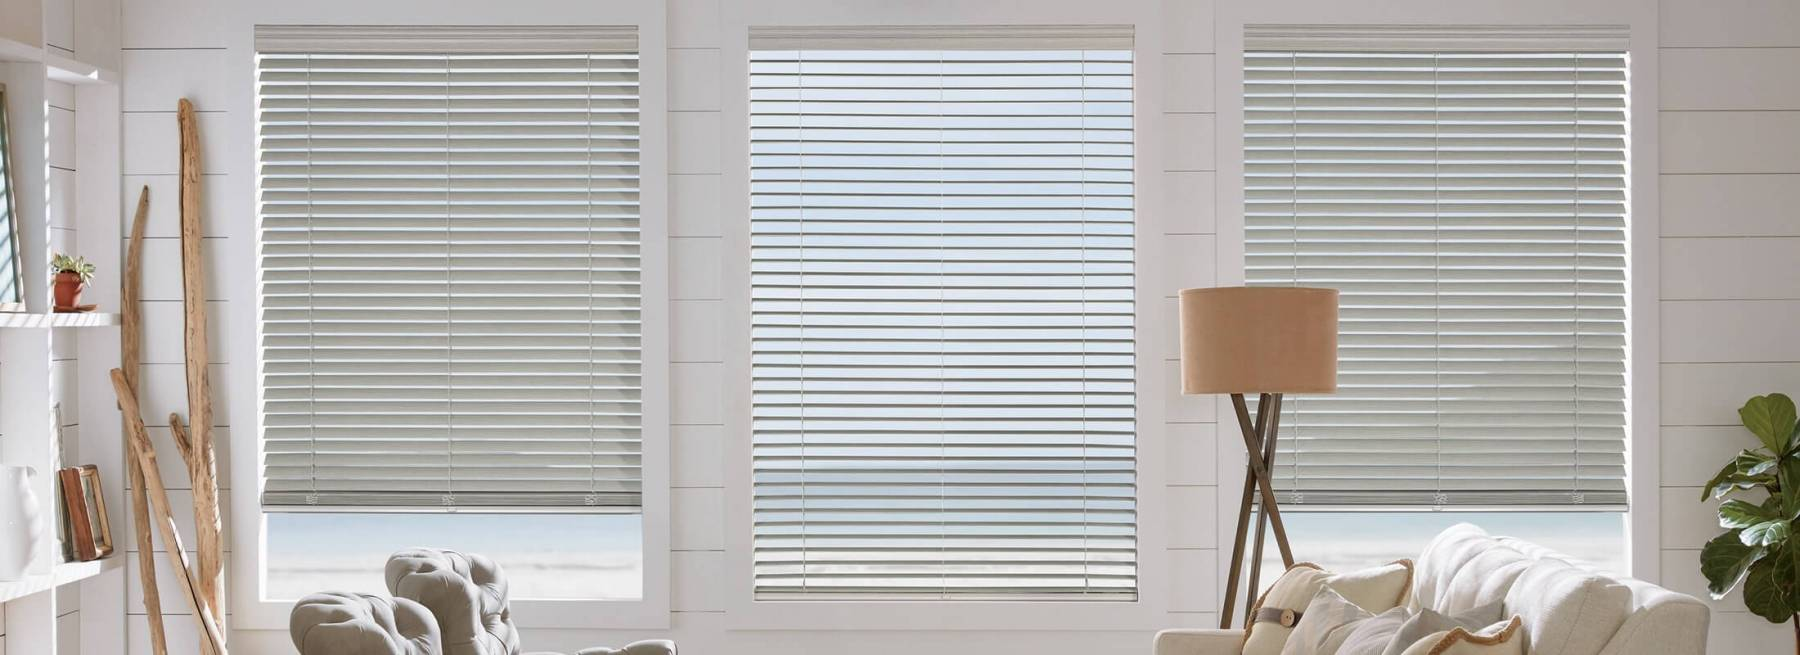 Hunter Douglas Apex NC Window Blinds Shades And Shutters